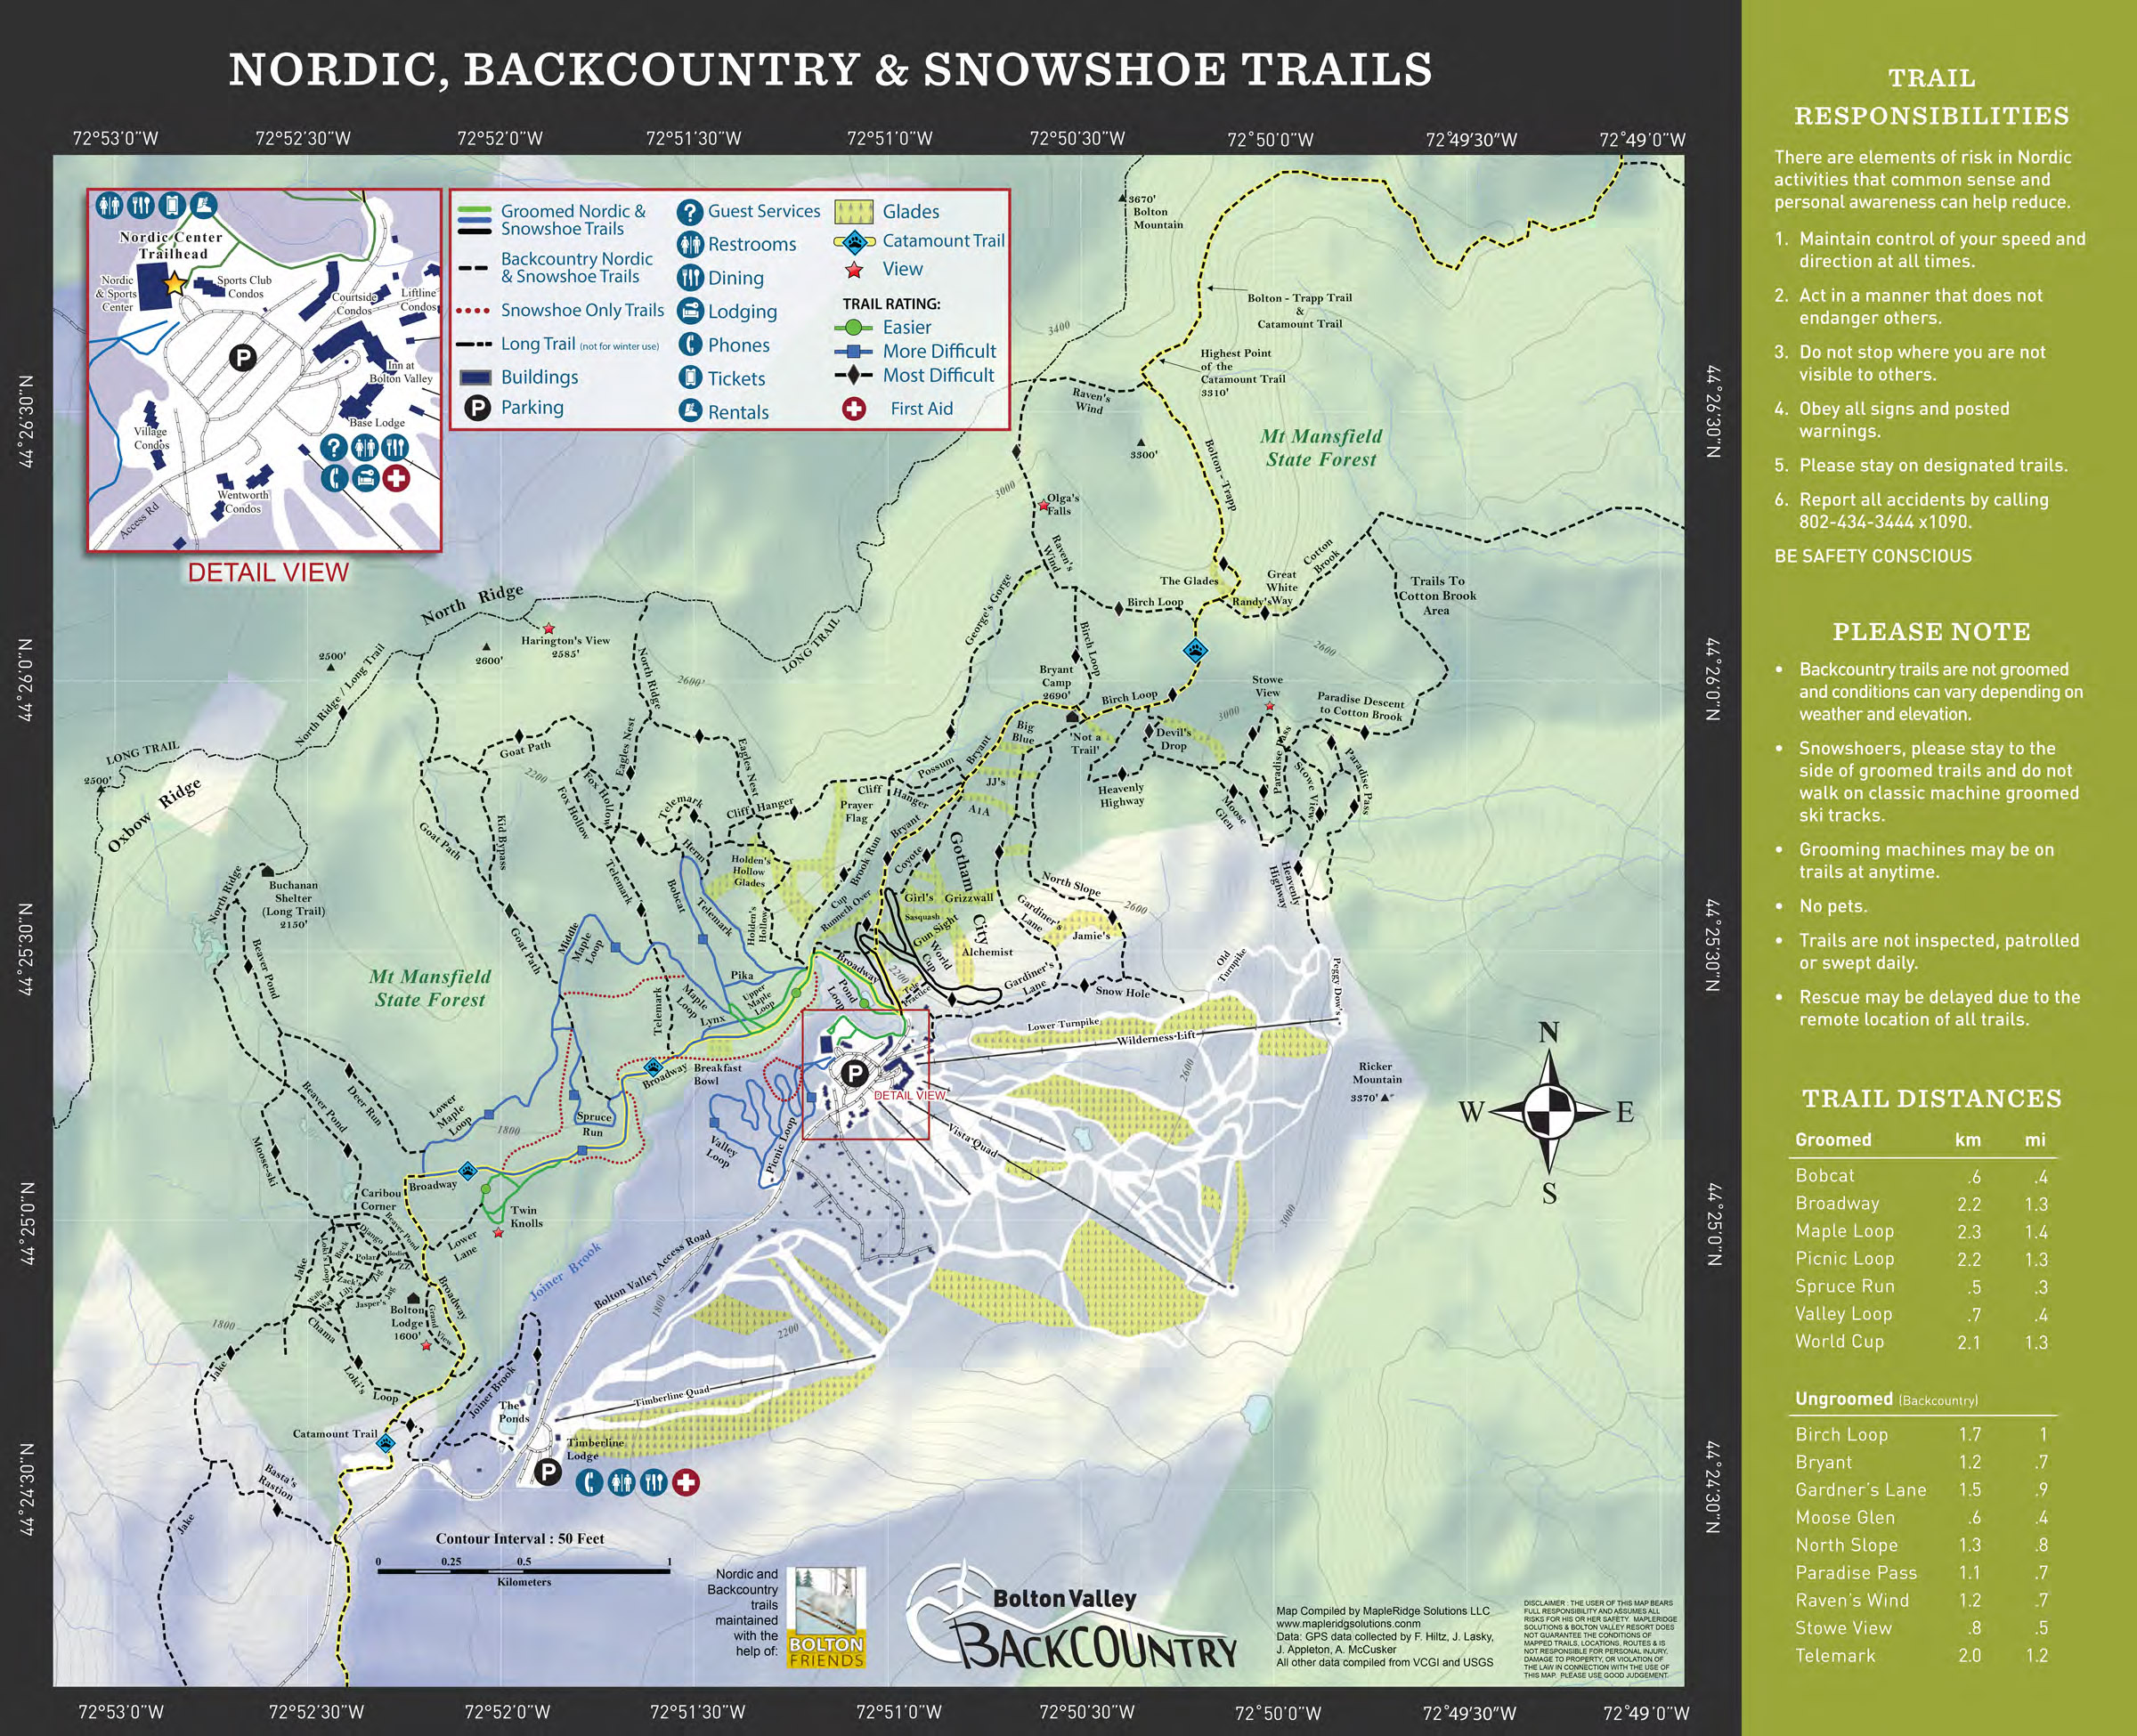 A copy of the 2018-2019 Nordic and Backcountry trail map from Bolton Valley Ski Resort in Vermont